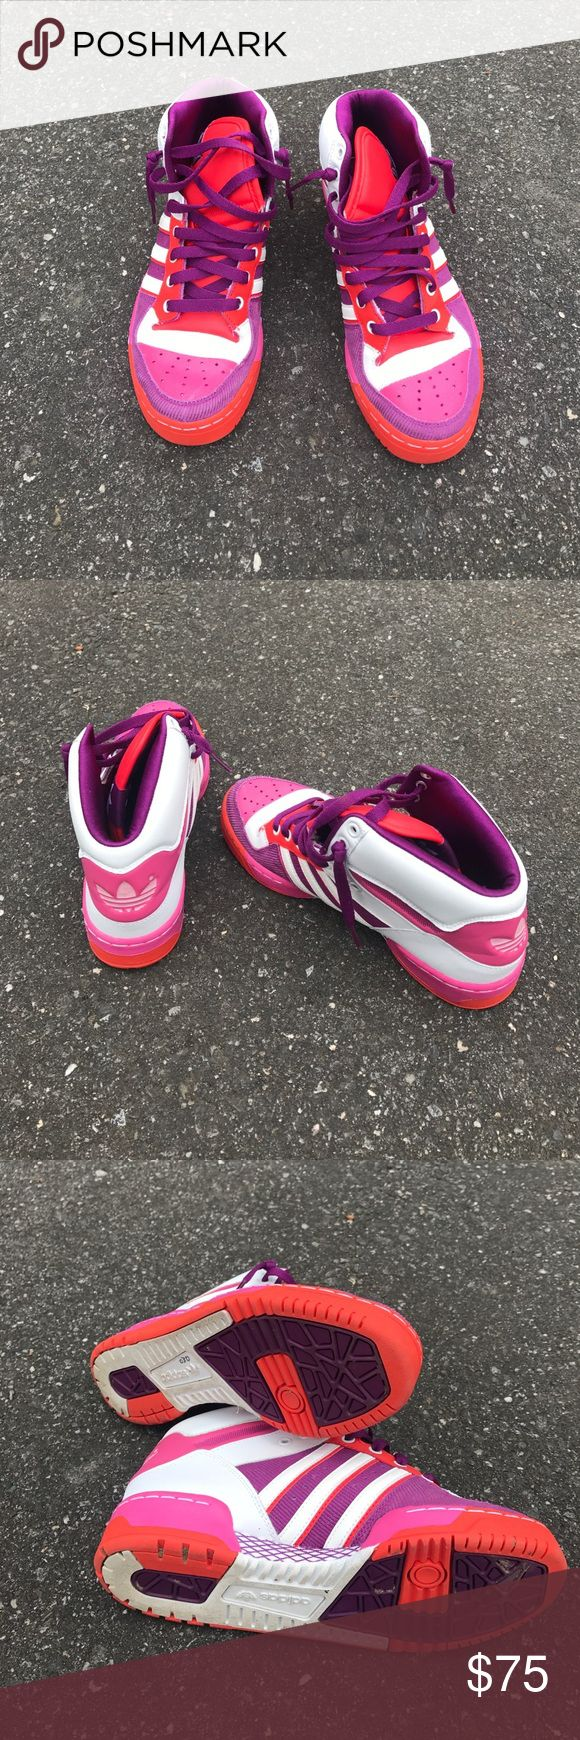 Adidas Pink purple and orange adidas mid top. Worn once! Perfect condition. Adidas Shoes Sneakers